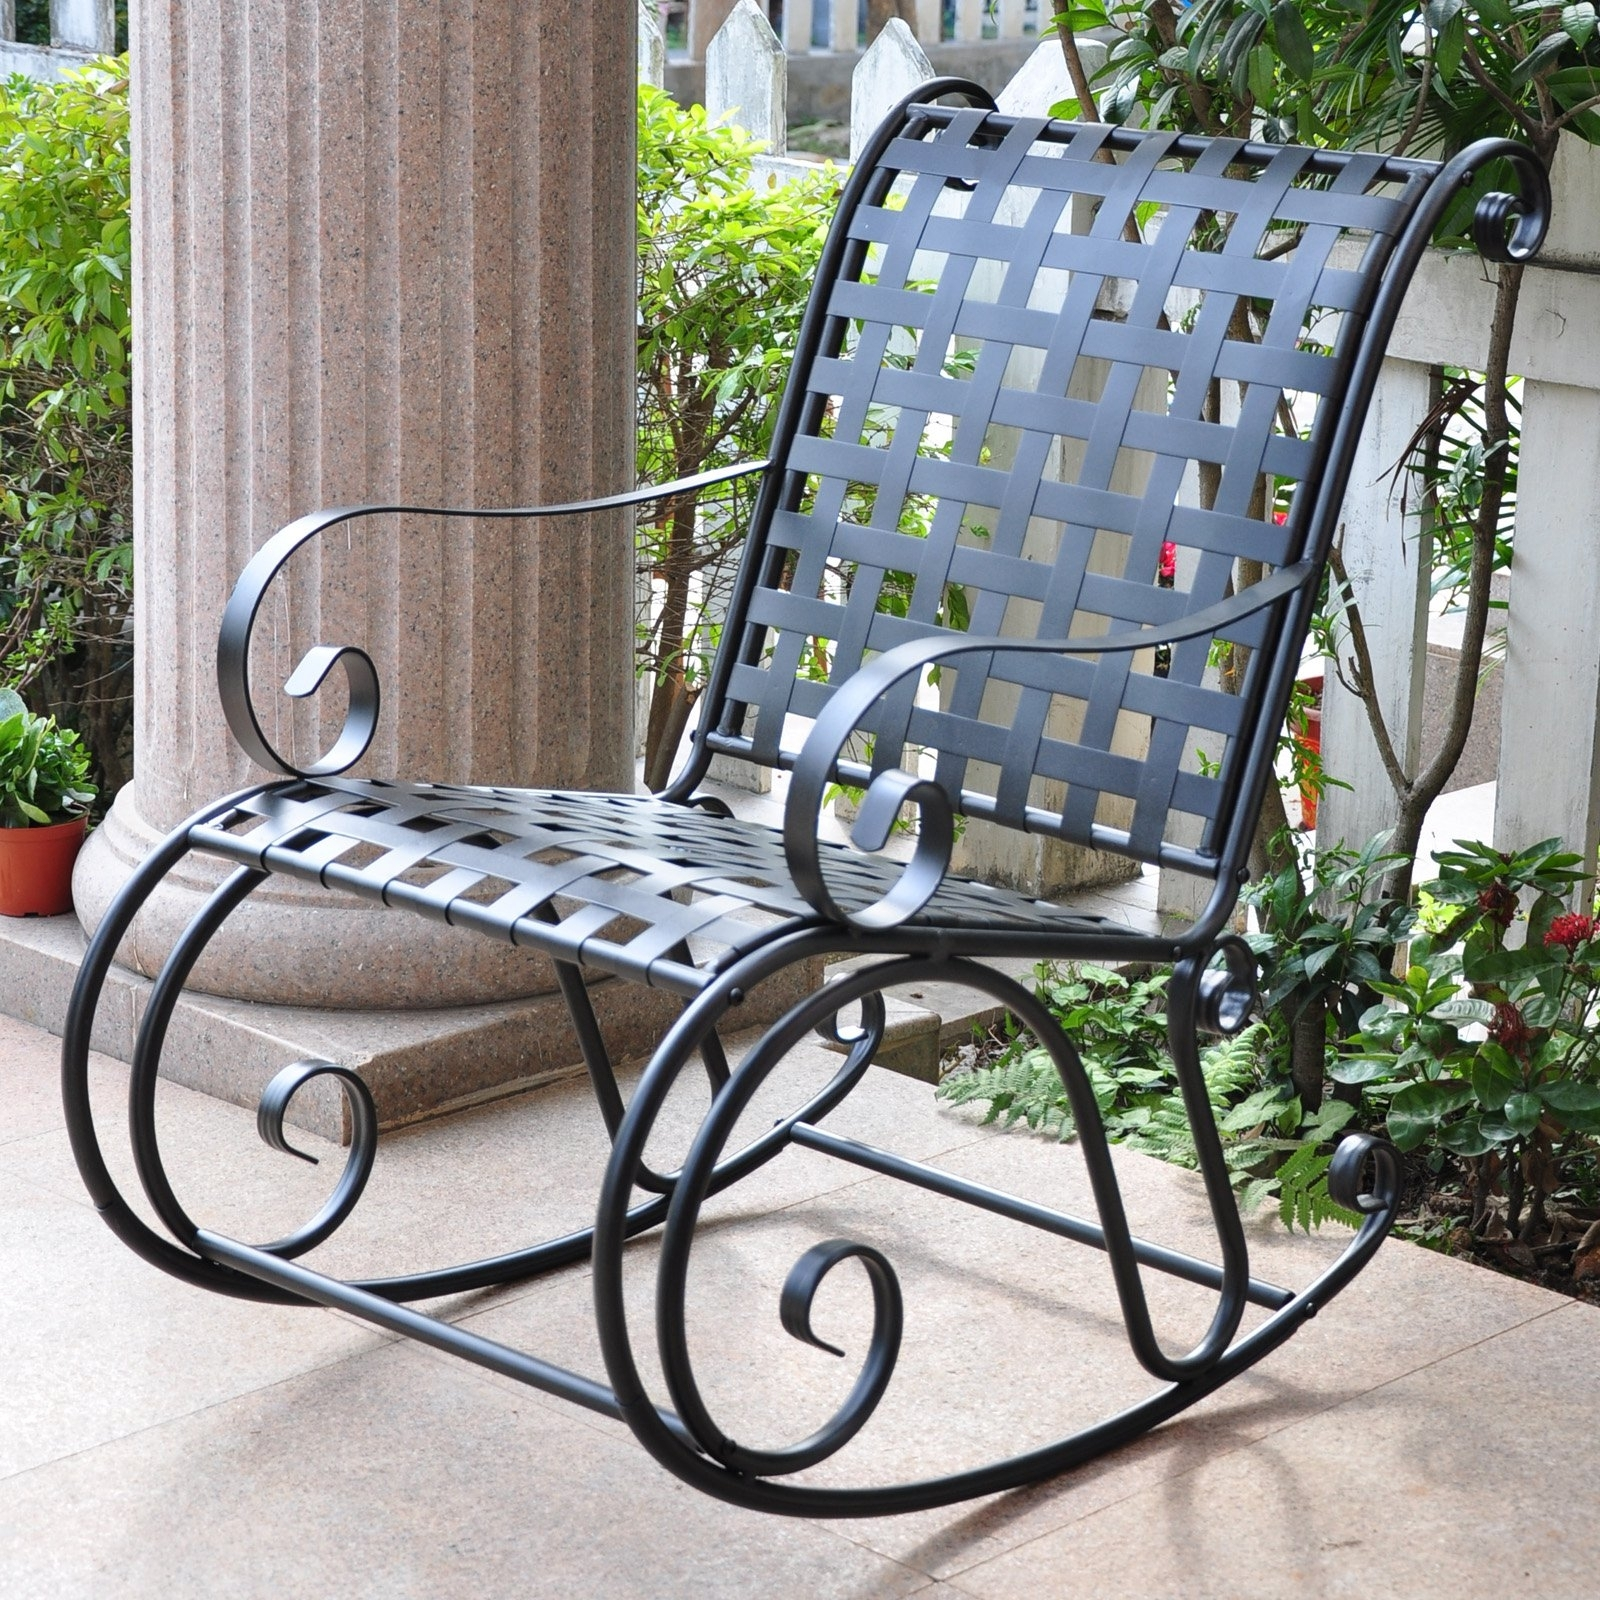 Inspiration about Wrought Iron Rocking Chair Patio Furniture Designs Outdoor Chairs Inside Iron Rocking Patio Chairs (#5 of 15)